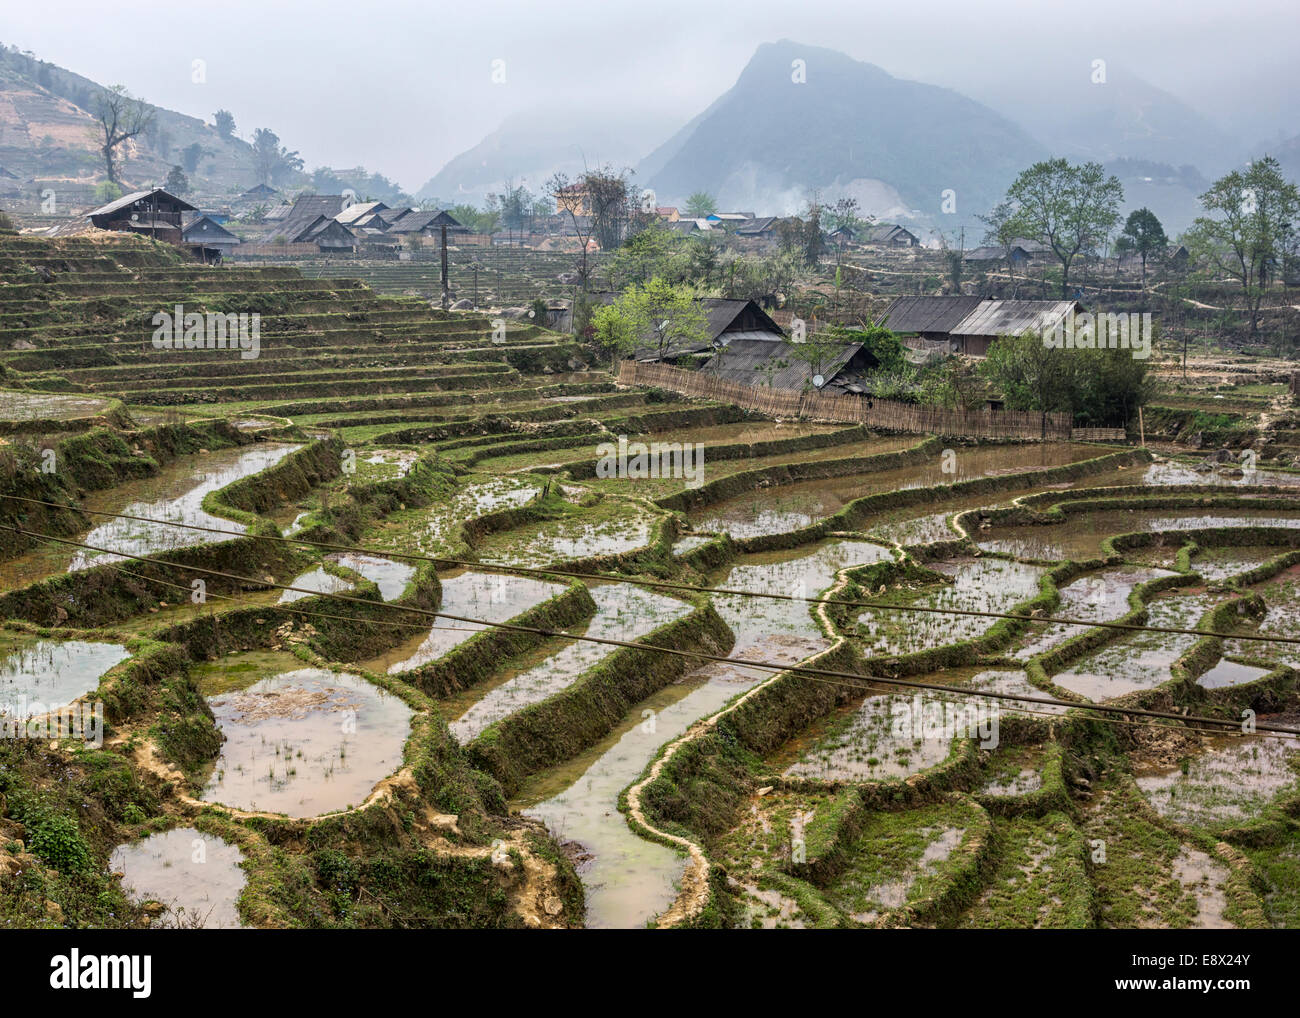 Terraced rice paddies and Hmong village in the Northern mountains. - Stock Image